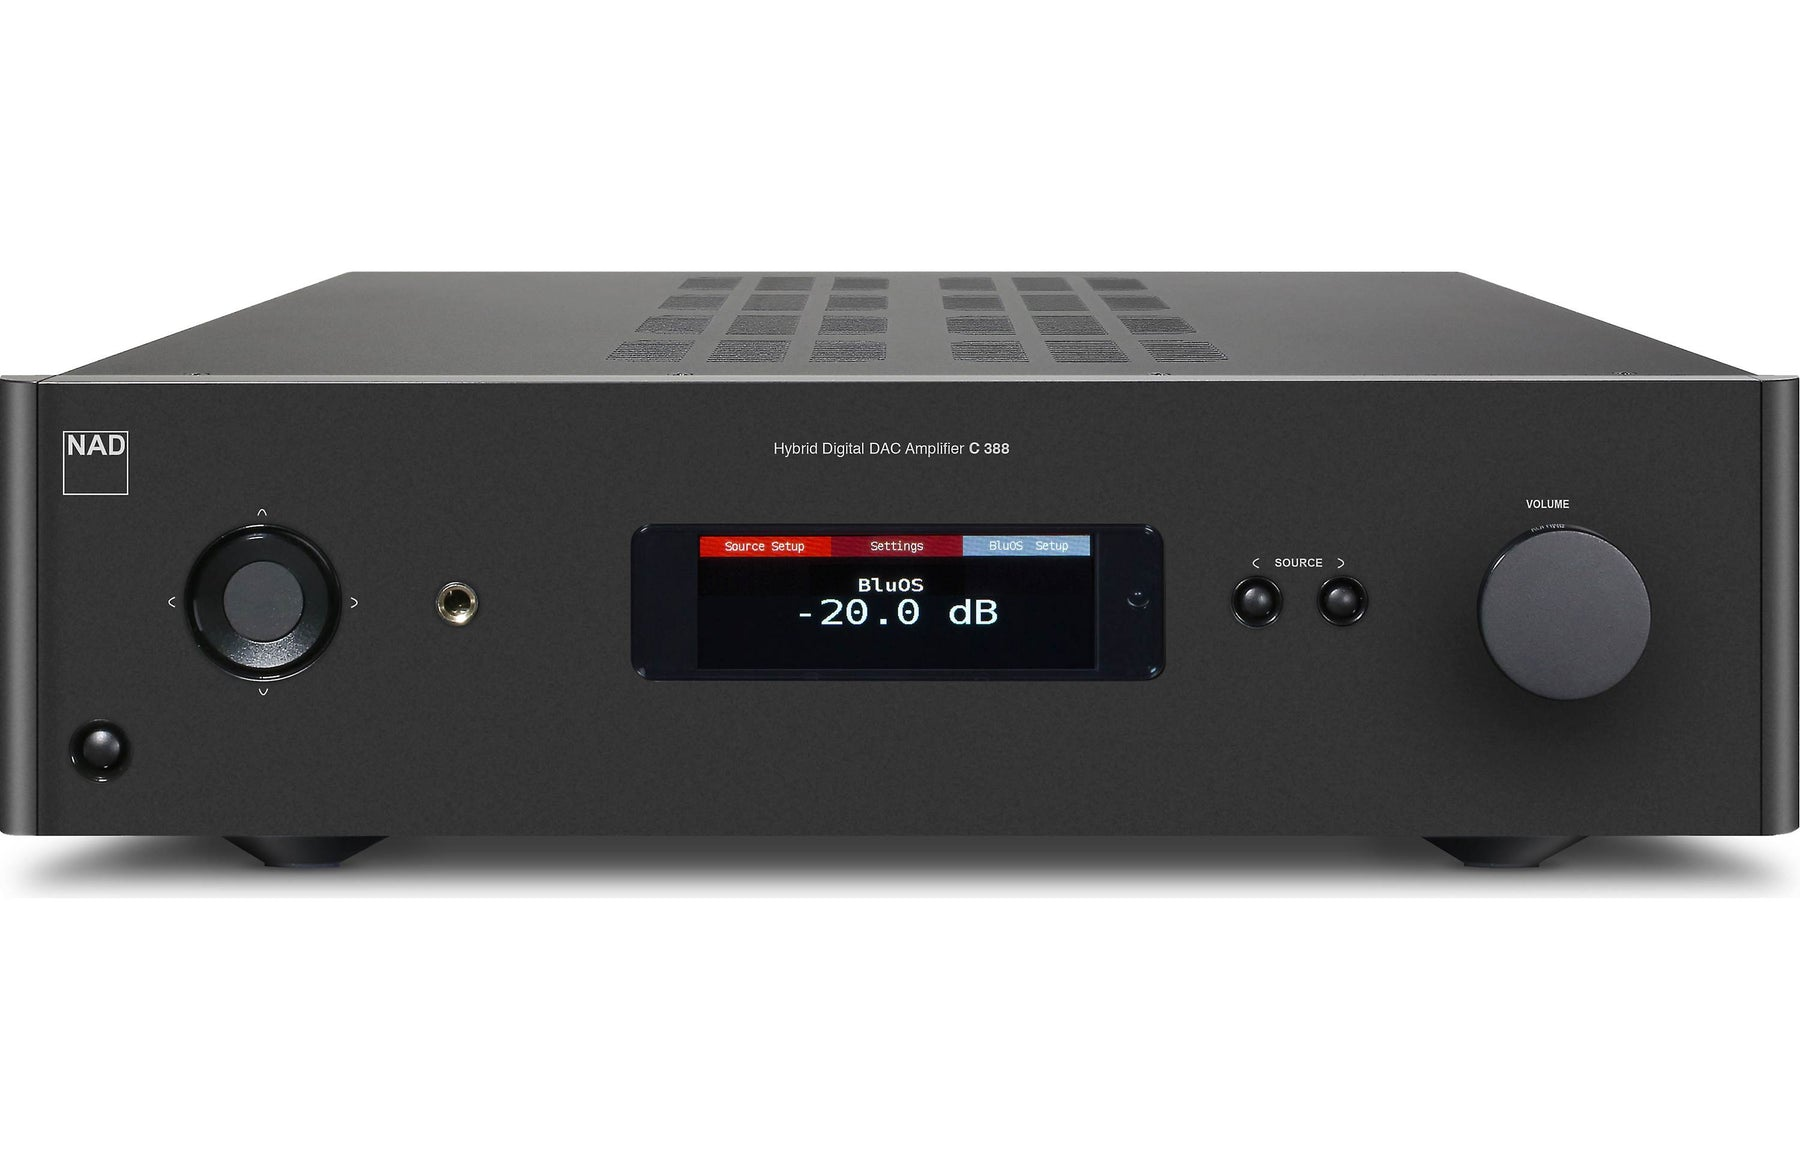 NAD Electronics C 388 BluOS-2i Hybrid Digital DAC Amplifier Factory Refurbished - Safe and Sound HQ